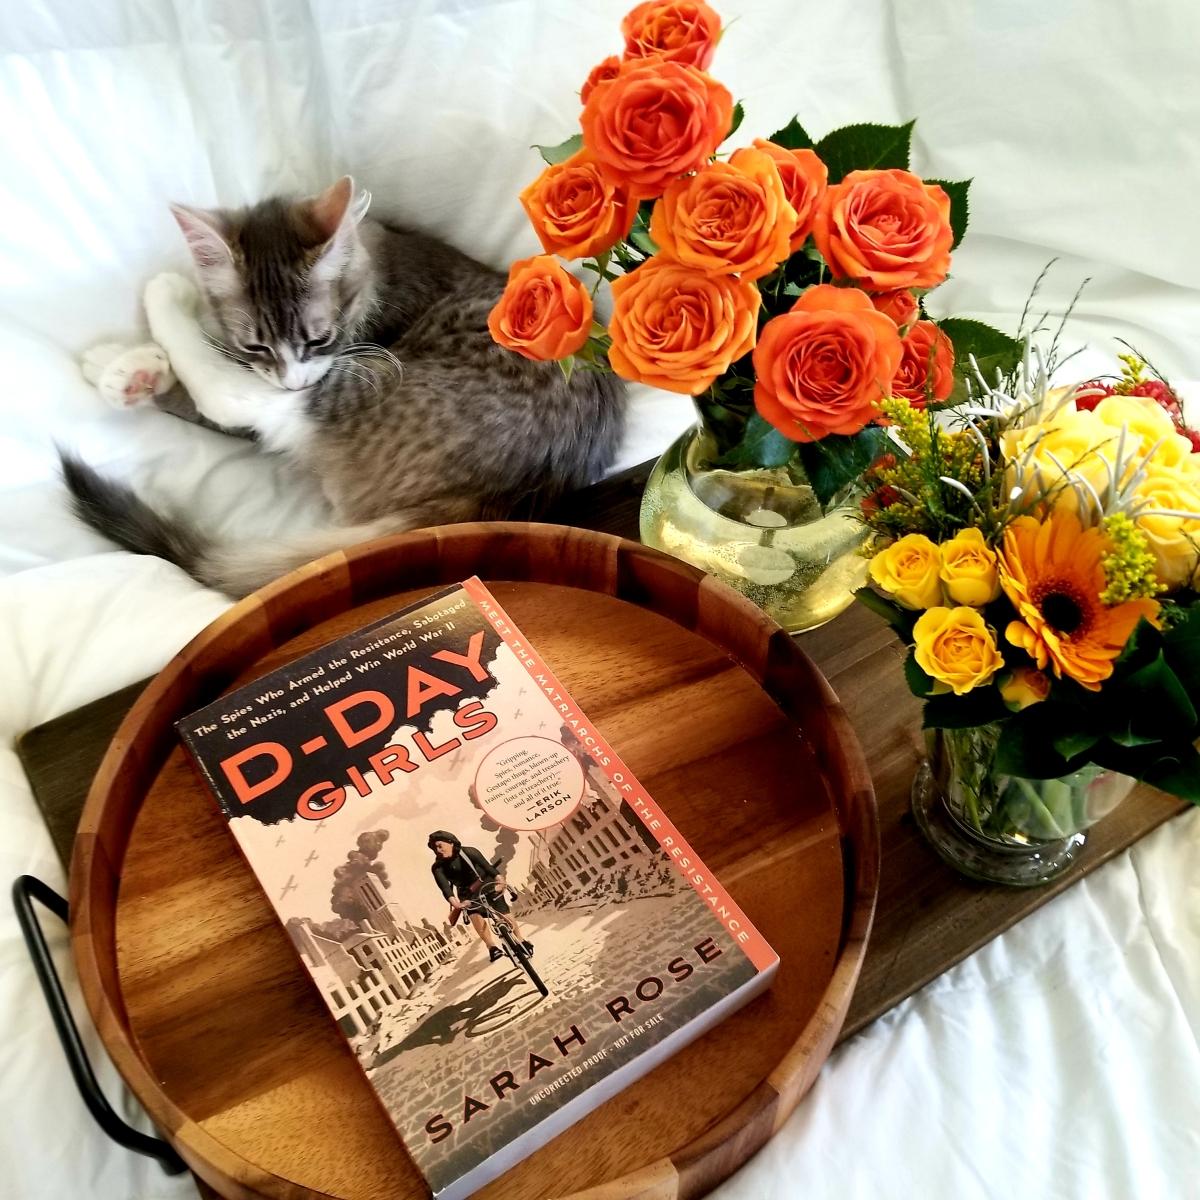 D-Day Girls by Sarah Rose #bookreview #tarheelreader #thrddaygirls @thesarahrose @crownpublishing #ddaygirls